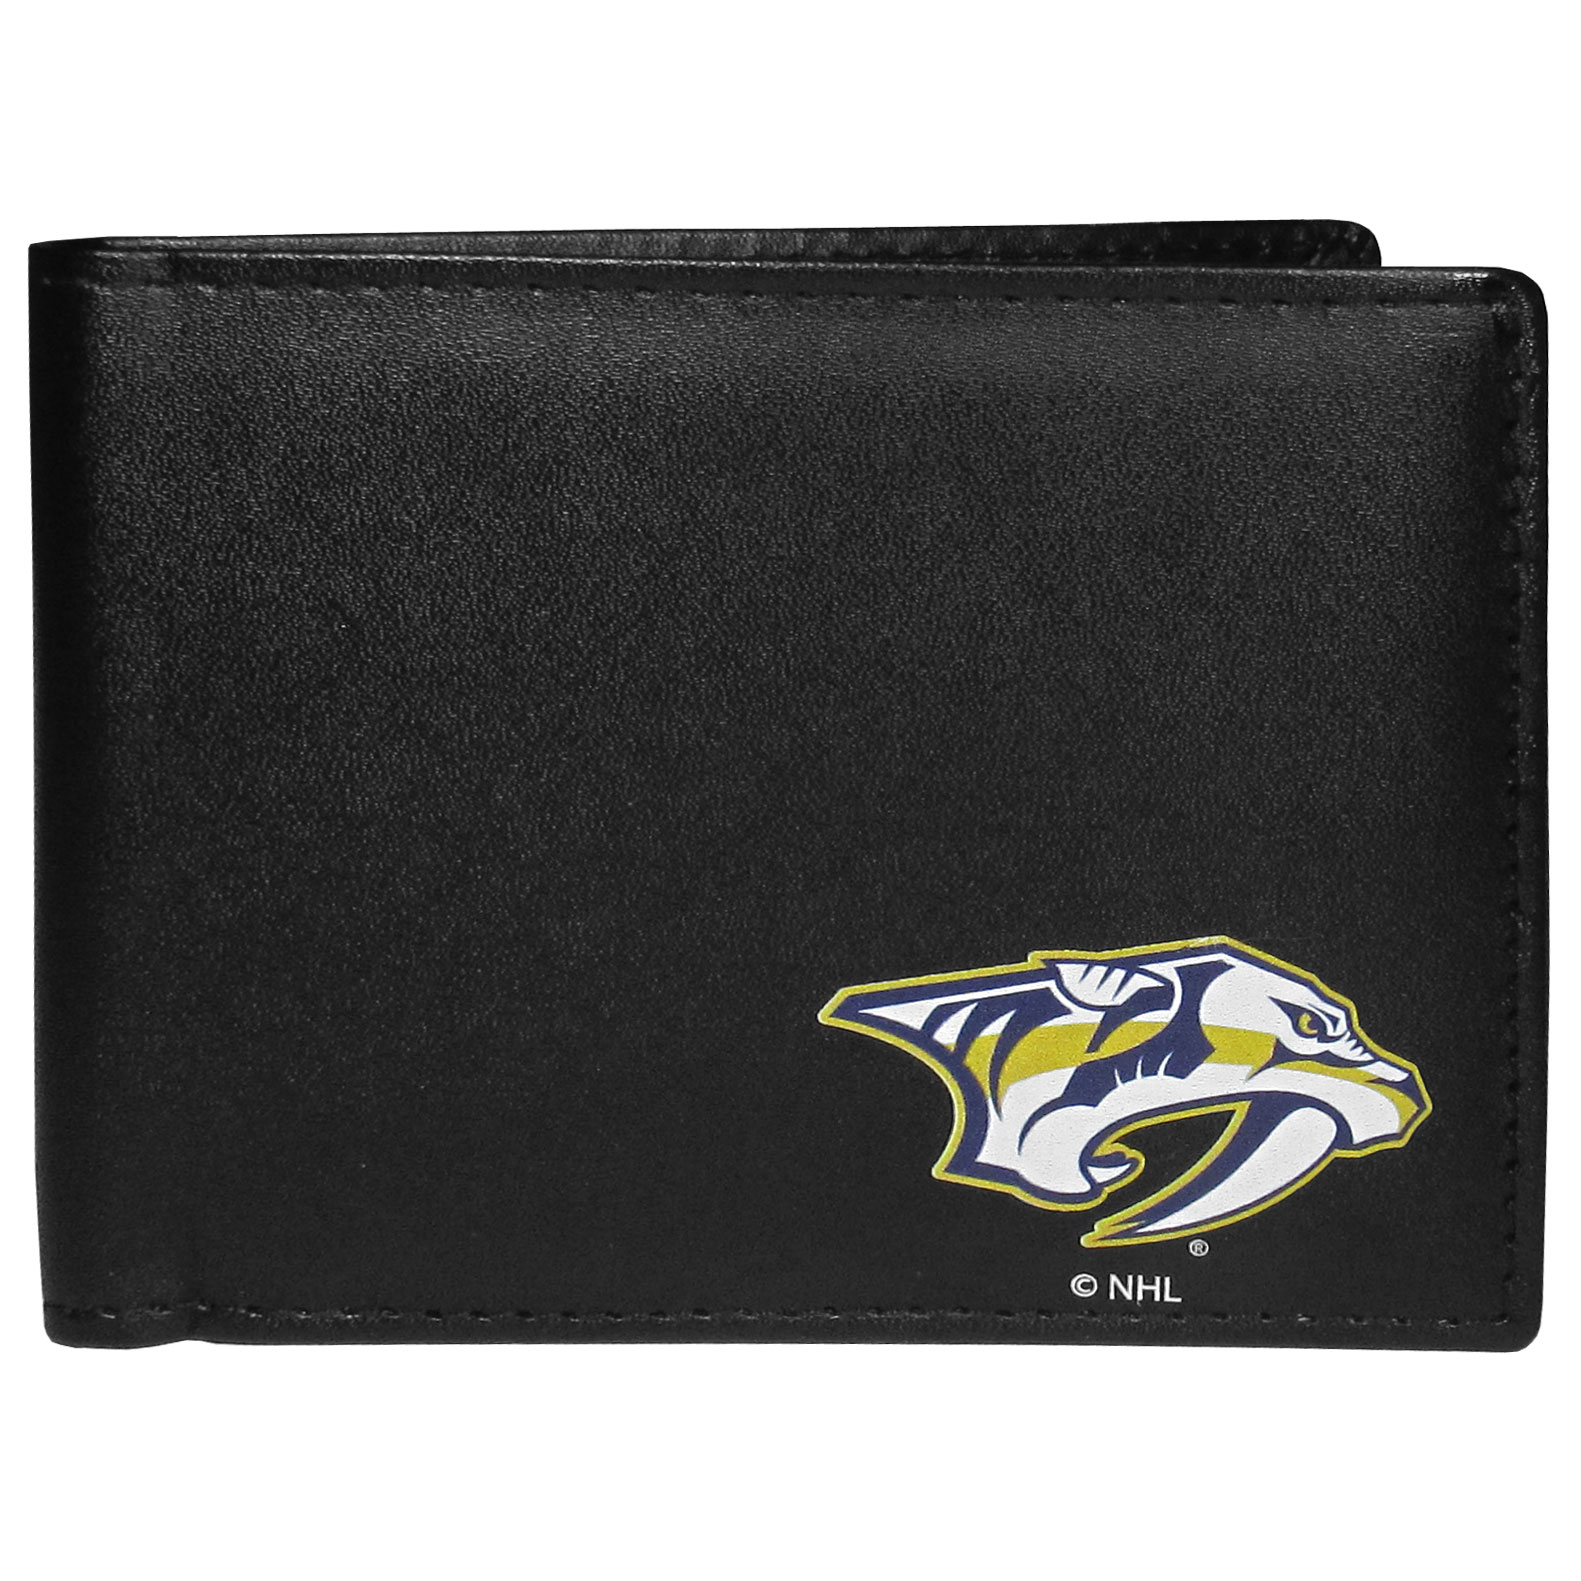 Nashville Predators Bi-fold Wallet - Sports fans do not have to sacrifice style with this classic bi-fold wallet that sports a Nashville Predators emblem. This men's fashion accessory has a leather grain look and expert craftmanship for a quality wallet at a great price. The wallet features inner credit card slots, windowed ID slot and a large billfold pocket. The front of the wallet features a printed team logo.